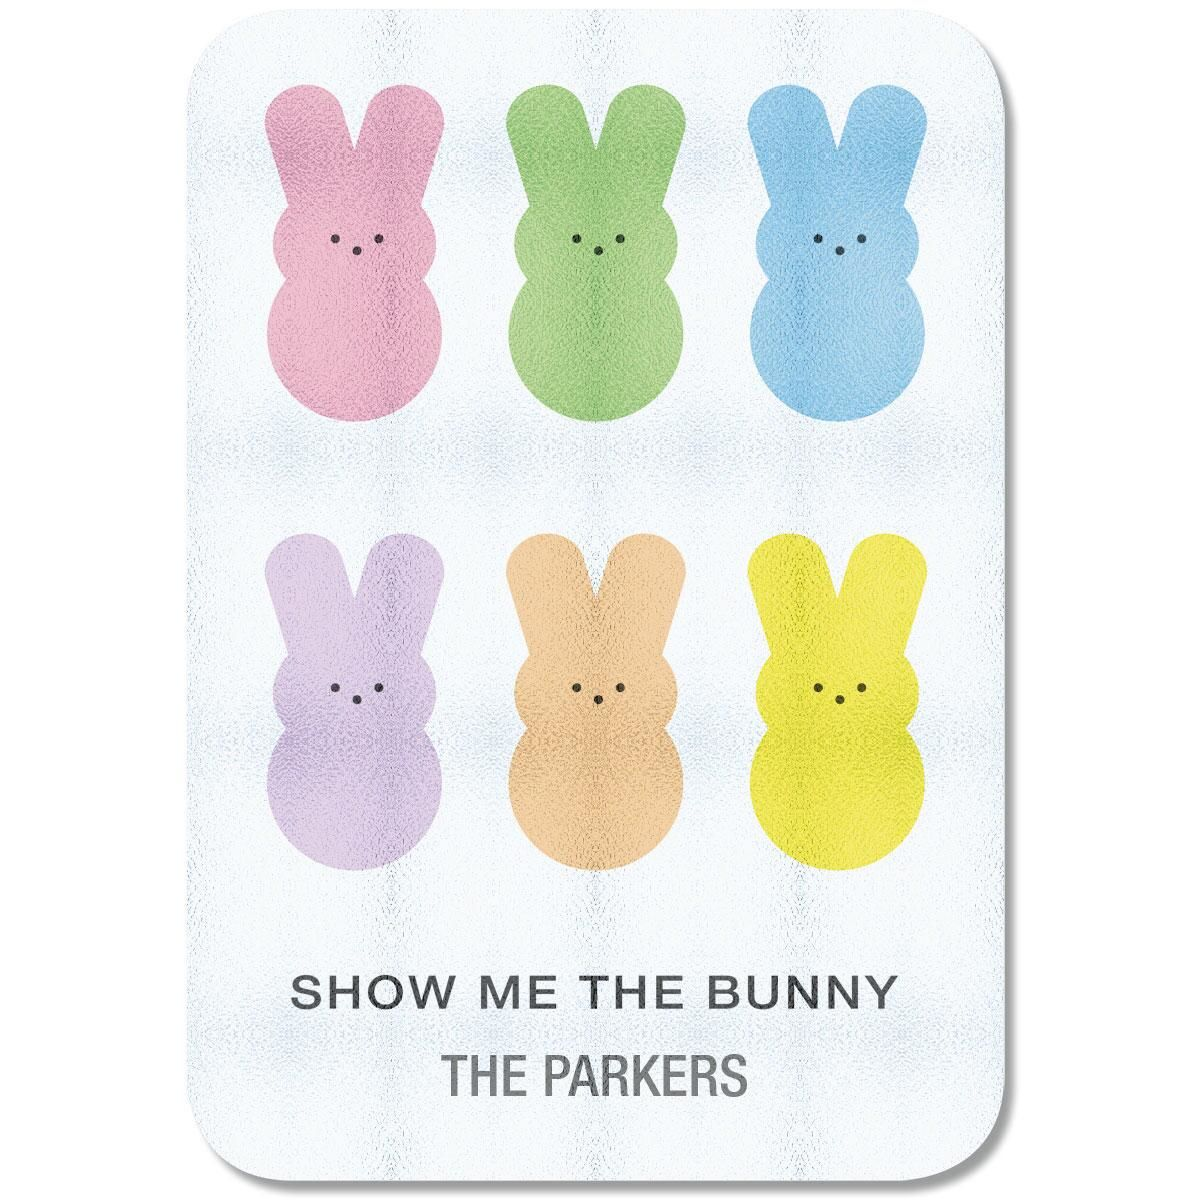 Show Me The Bunny Personalized Cutting Board by Designer Jillian Yee-Pham